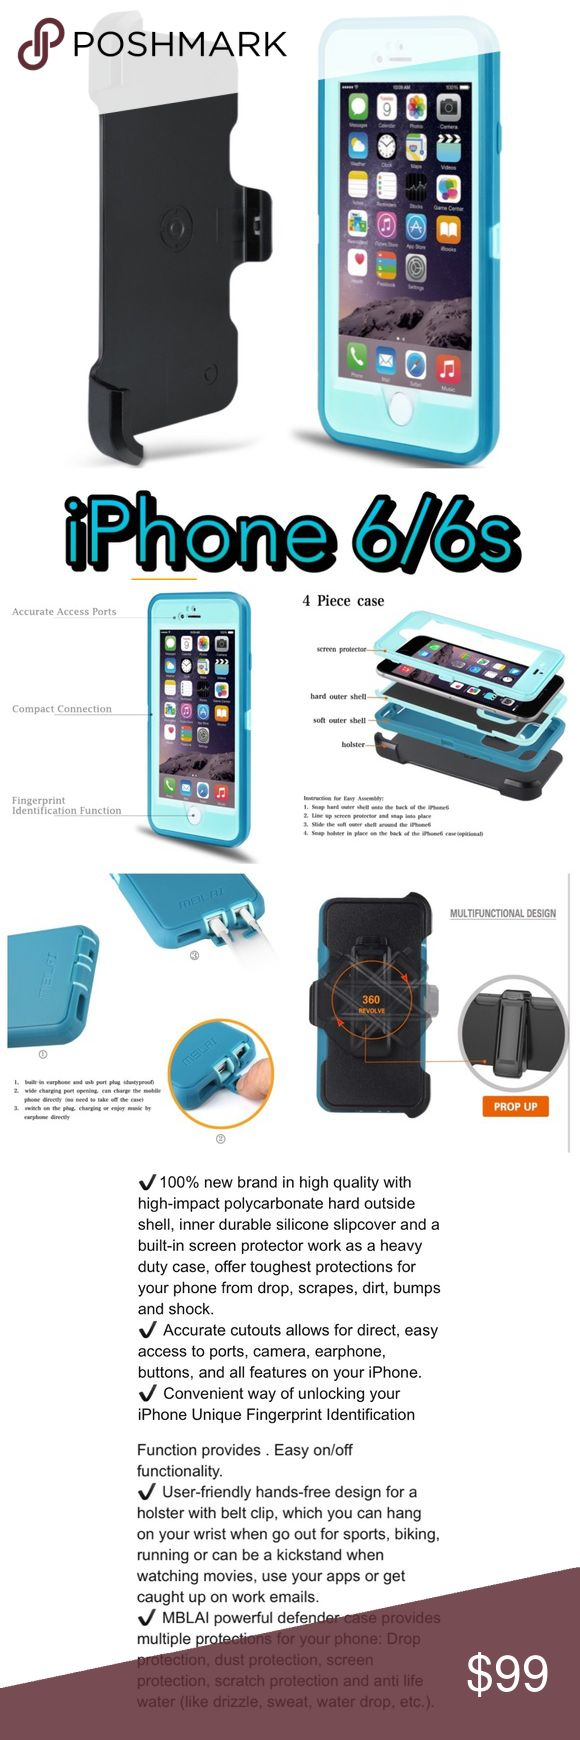 iPhone 6 6s case Defender 4 Layer Screen Protector iPhone 6 case, iPhone 6s case Shock Absorbent 4 Layer Defender. Built-in Screen Protector Case Cover For iPhone 6/6s [4.7 inch] (Blue/Teal)  ✔100% new brand in high quality with high-impact polycarbonate hard outside shell, inner durable silicone slipcover and a built-in screen protector work as a heavy duty case, offers toughest protection from drop, scrapes, dirt, bumps and shock.  ✔ Accurate cutouts allows for direct, easy access to all…